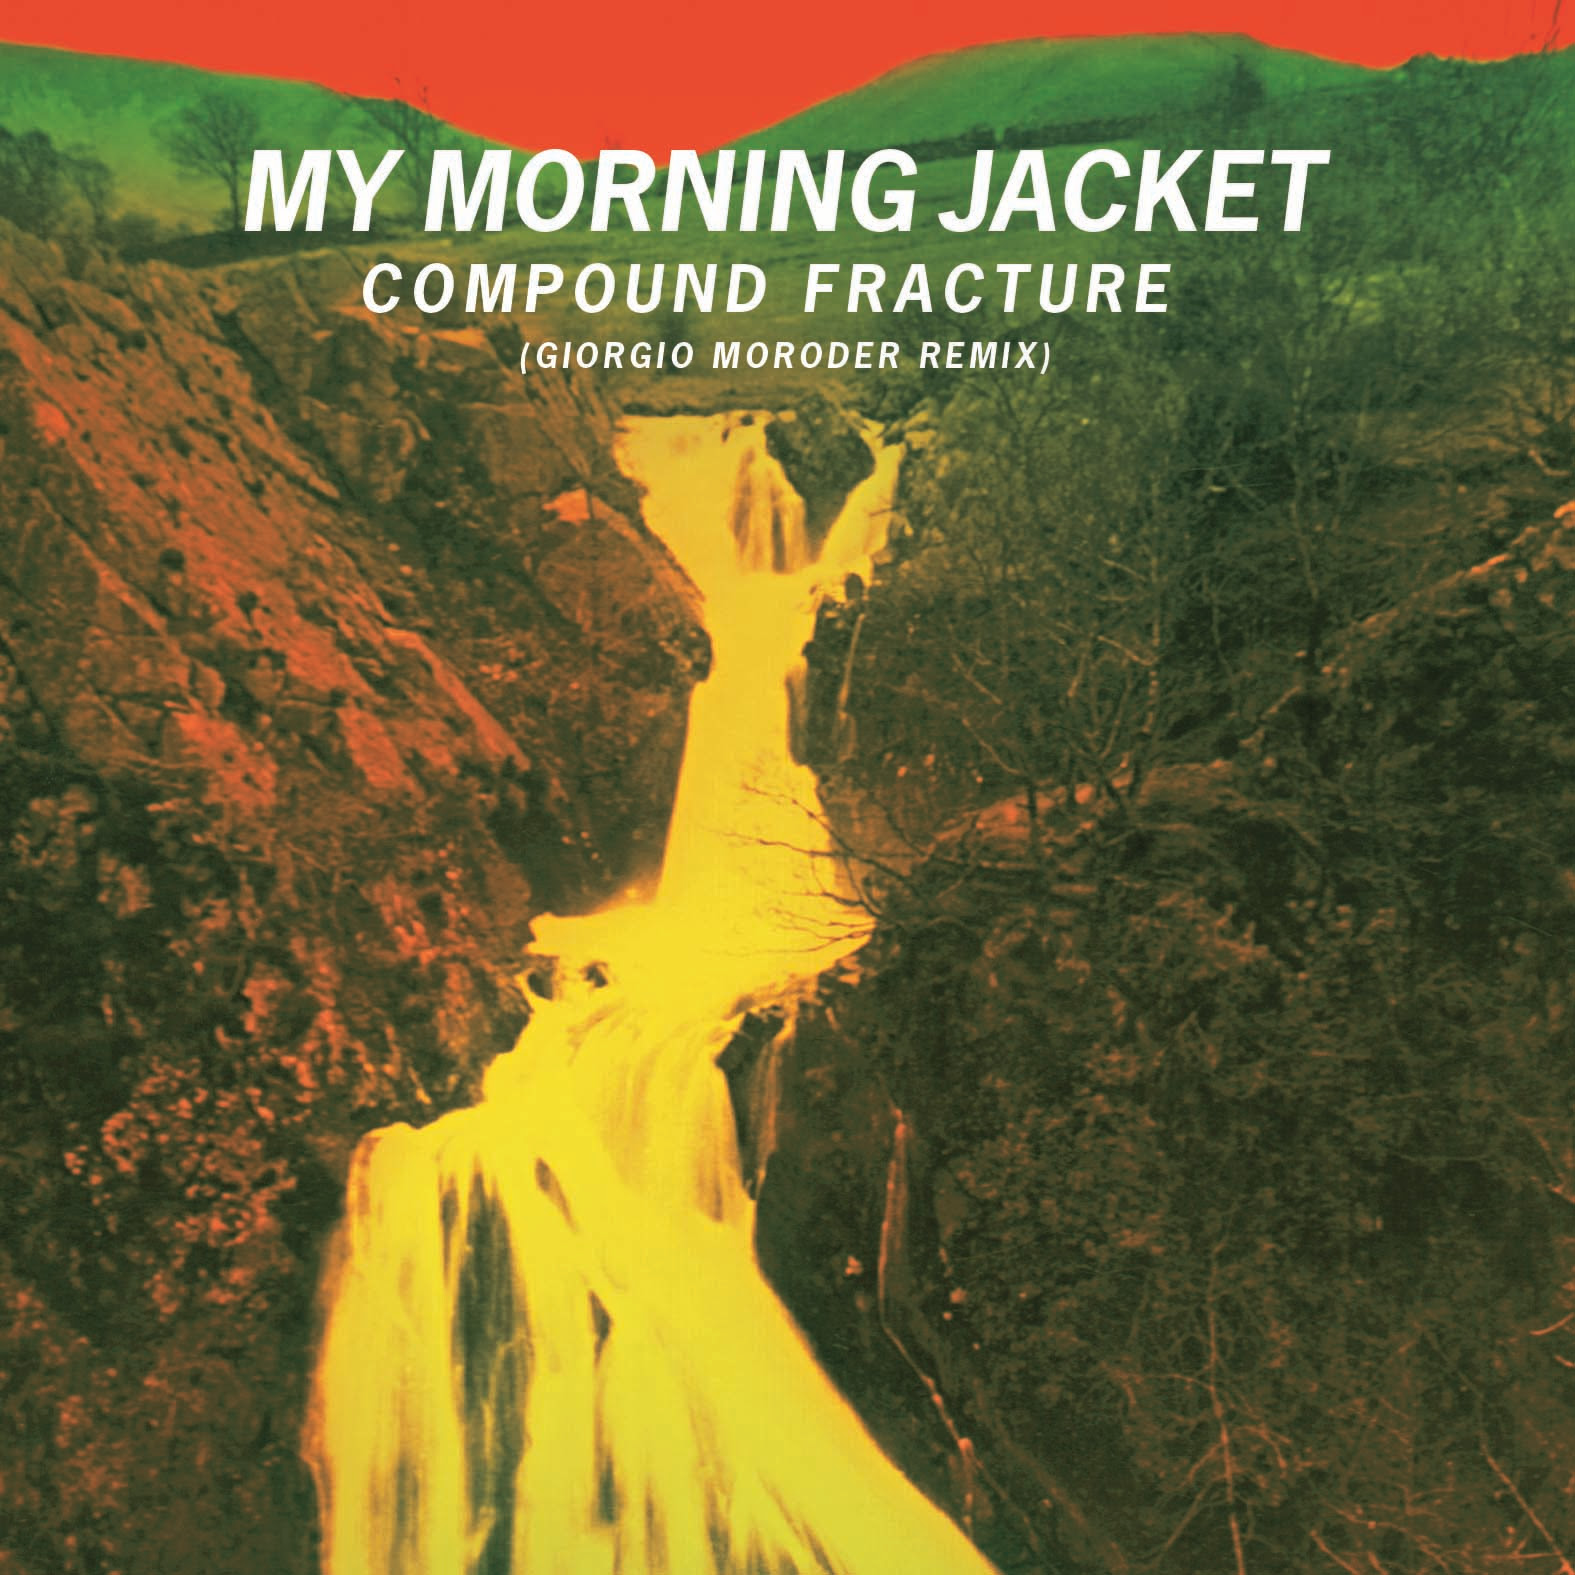 """Giorgio Moroder Remixes """"Compound Fracture"""" by My Morning Jacket,"""